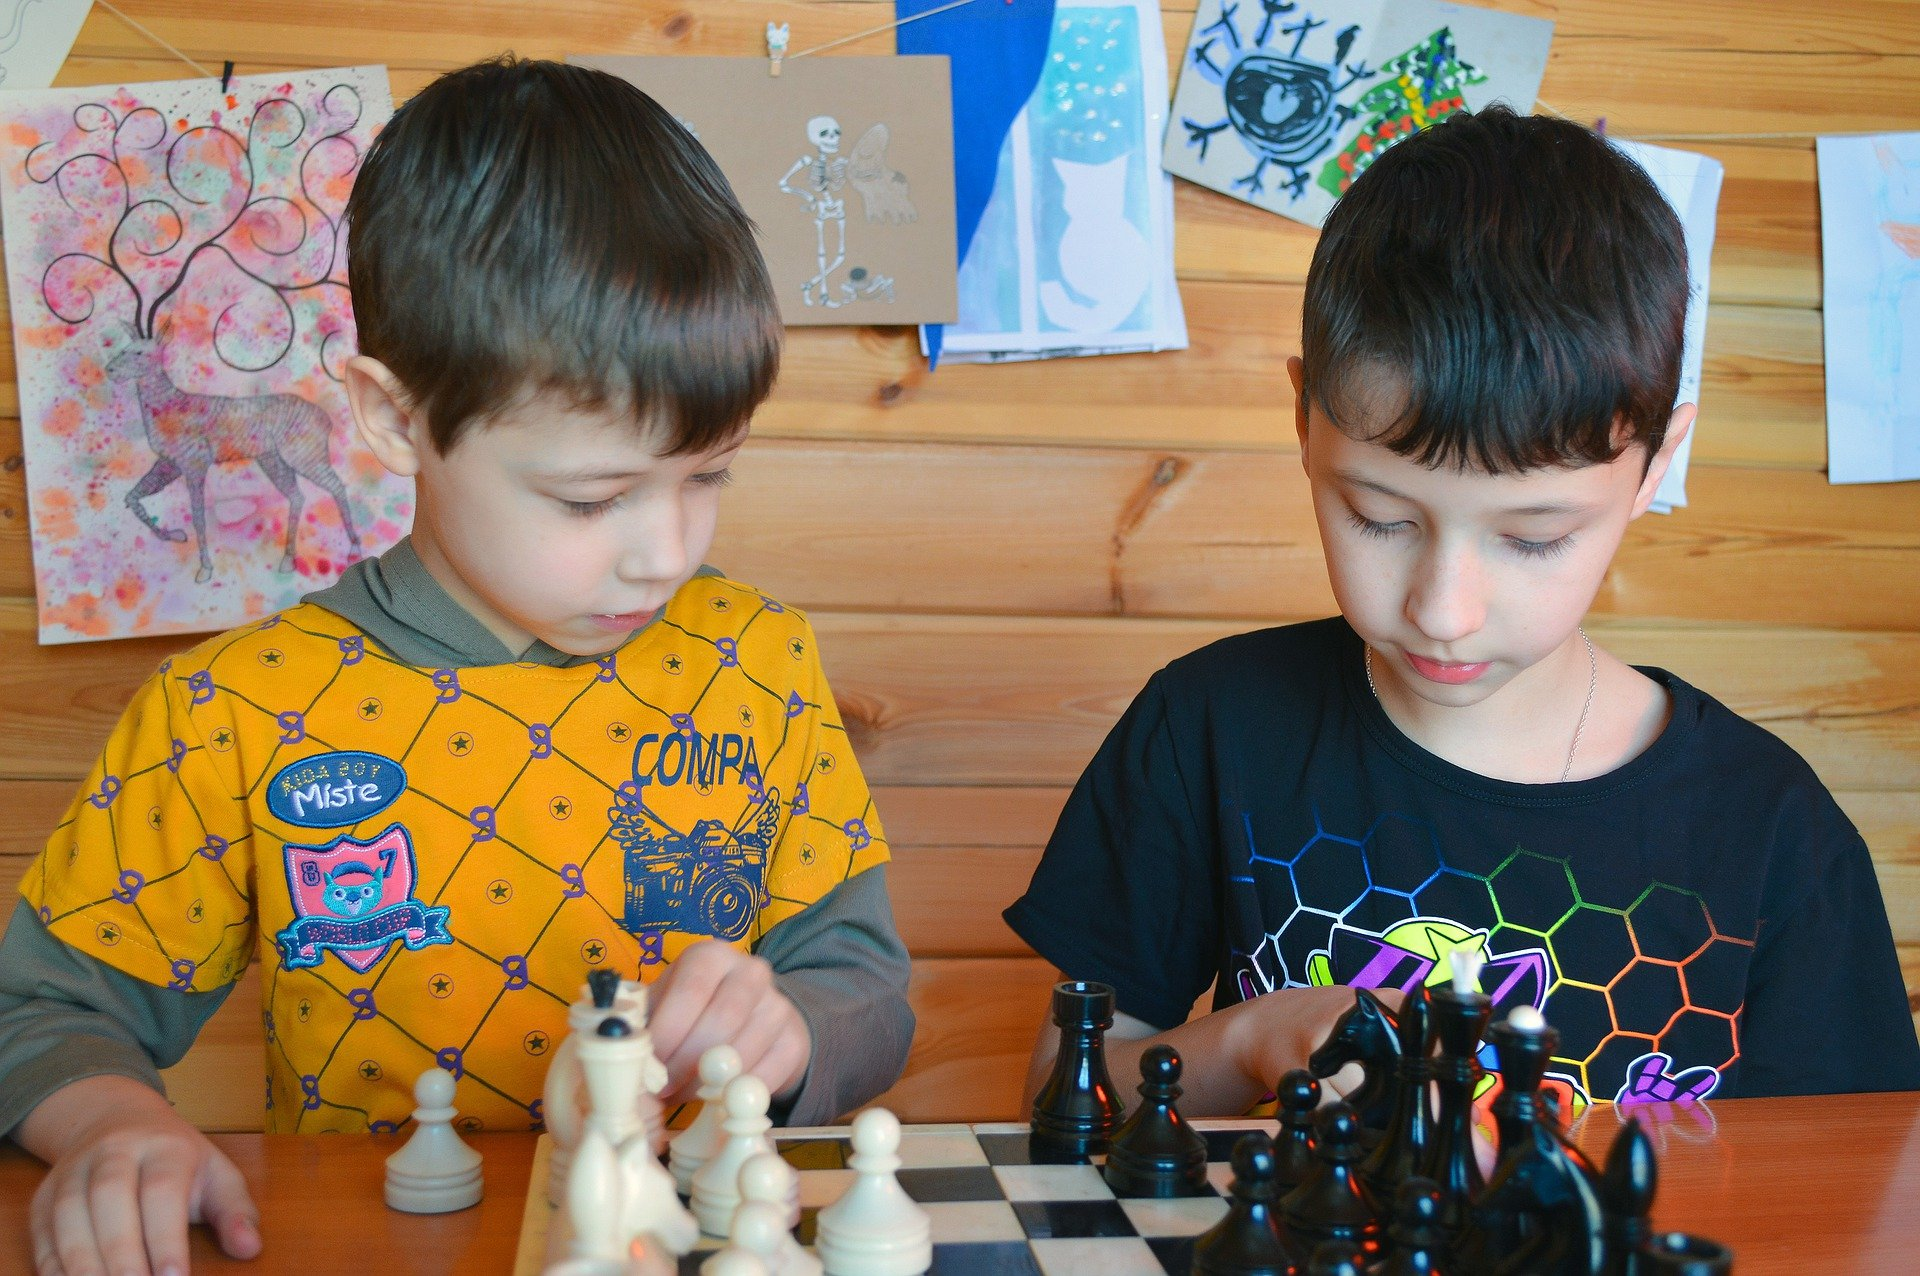 Pictured - Two young boys playing chess   Source: Pixabay